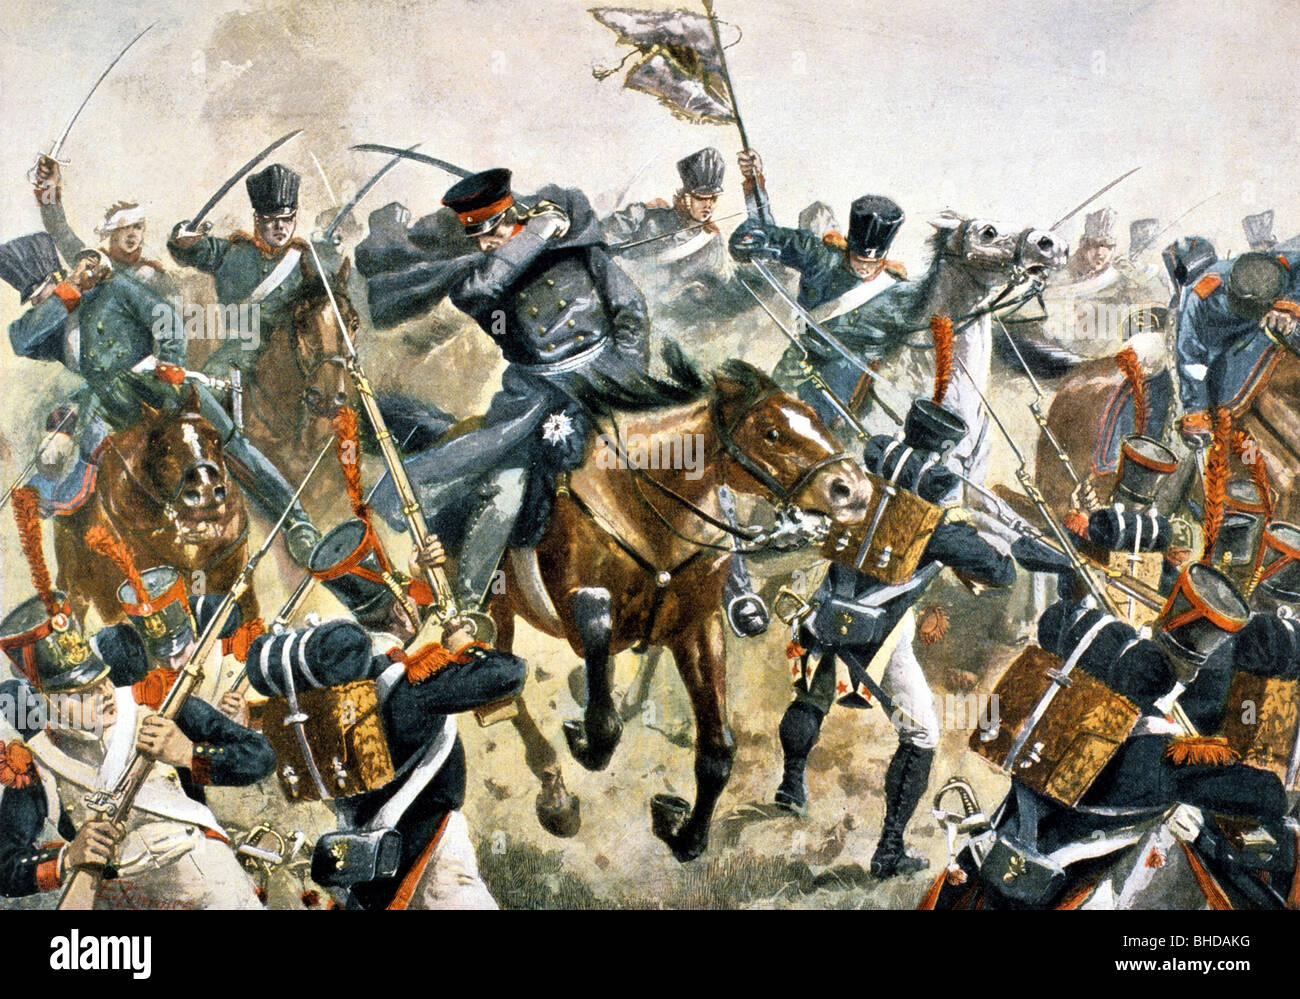 """the events and battles in the war of 1812 Sometimes referred to as the """"second war of independence,"""" the war of 1812 was the first large scale test of the american republic on the world stage."""